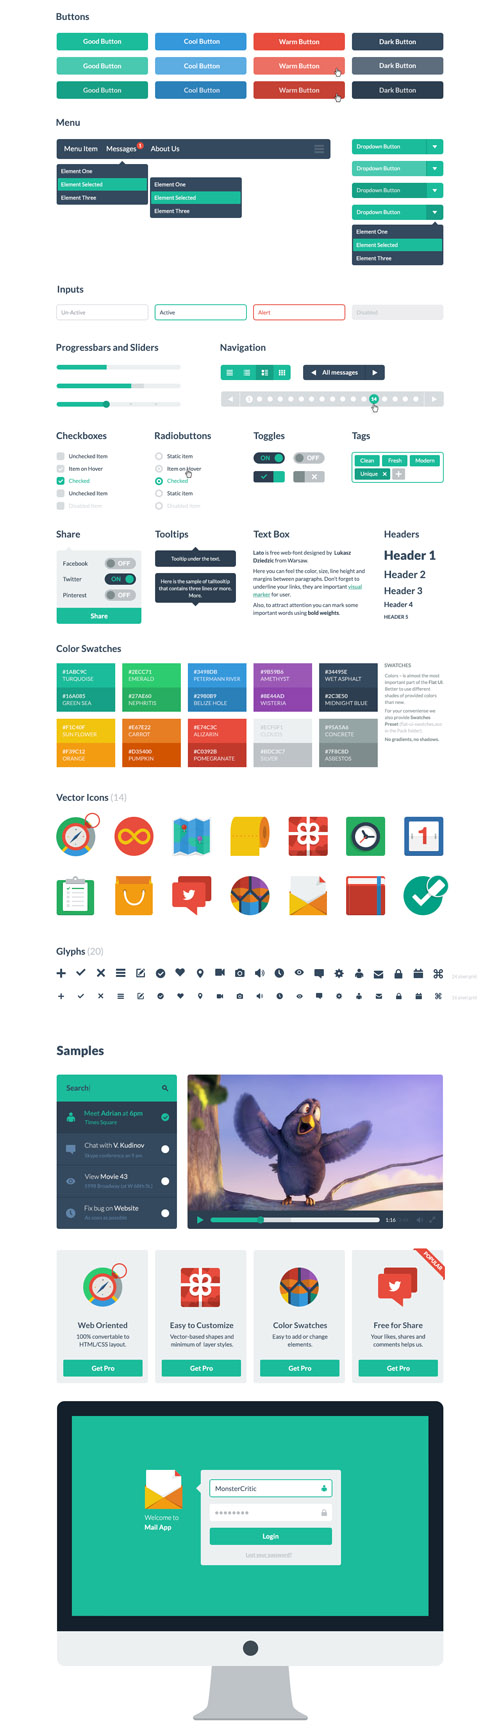 Flat Icons and Web Elements for UI Design-31